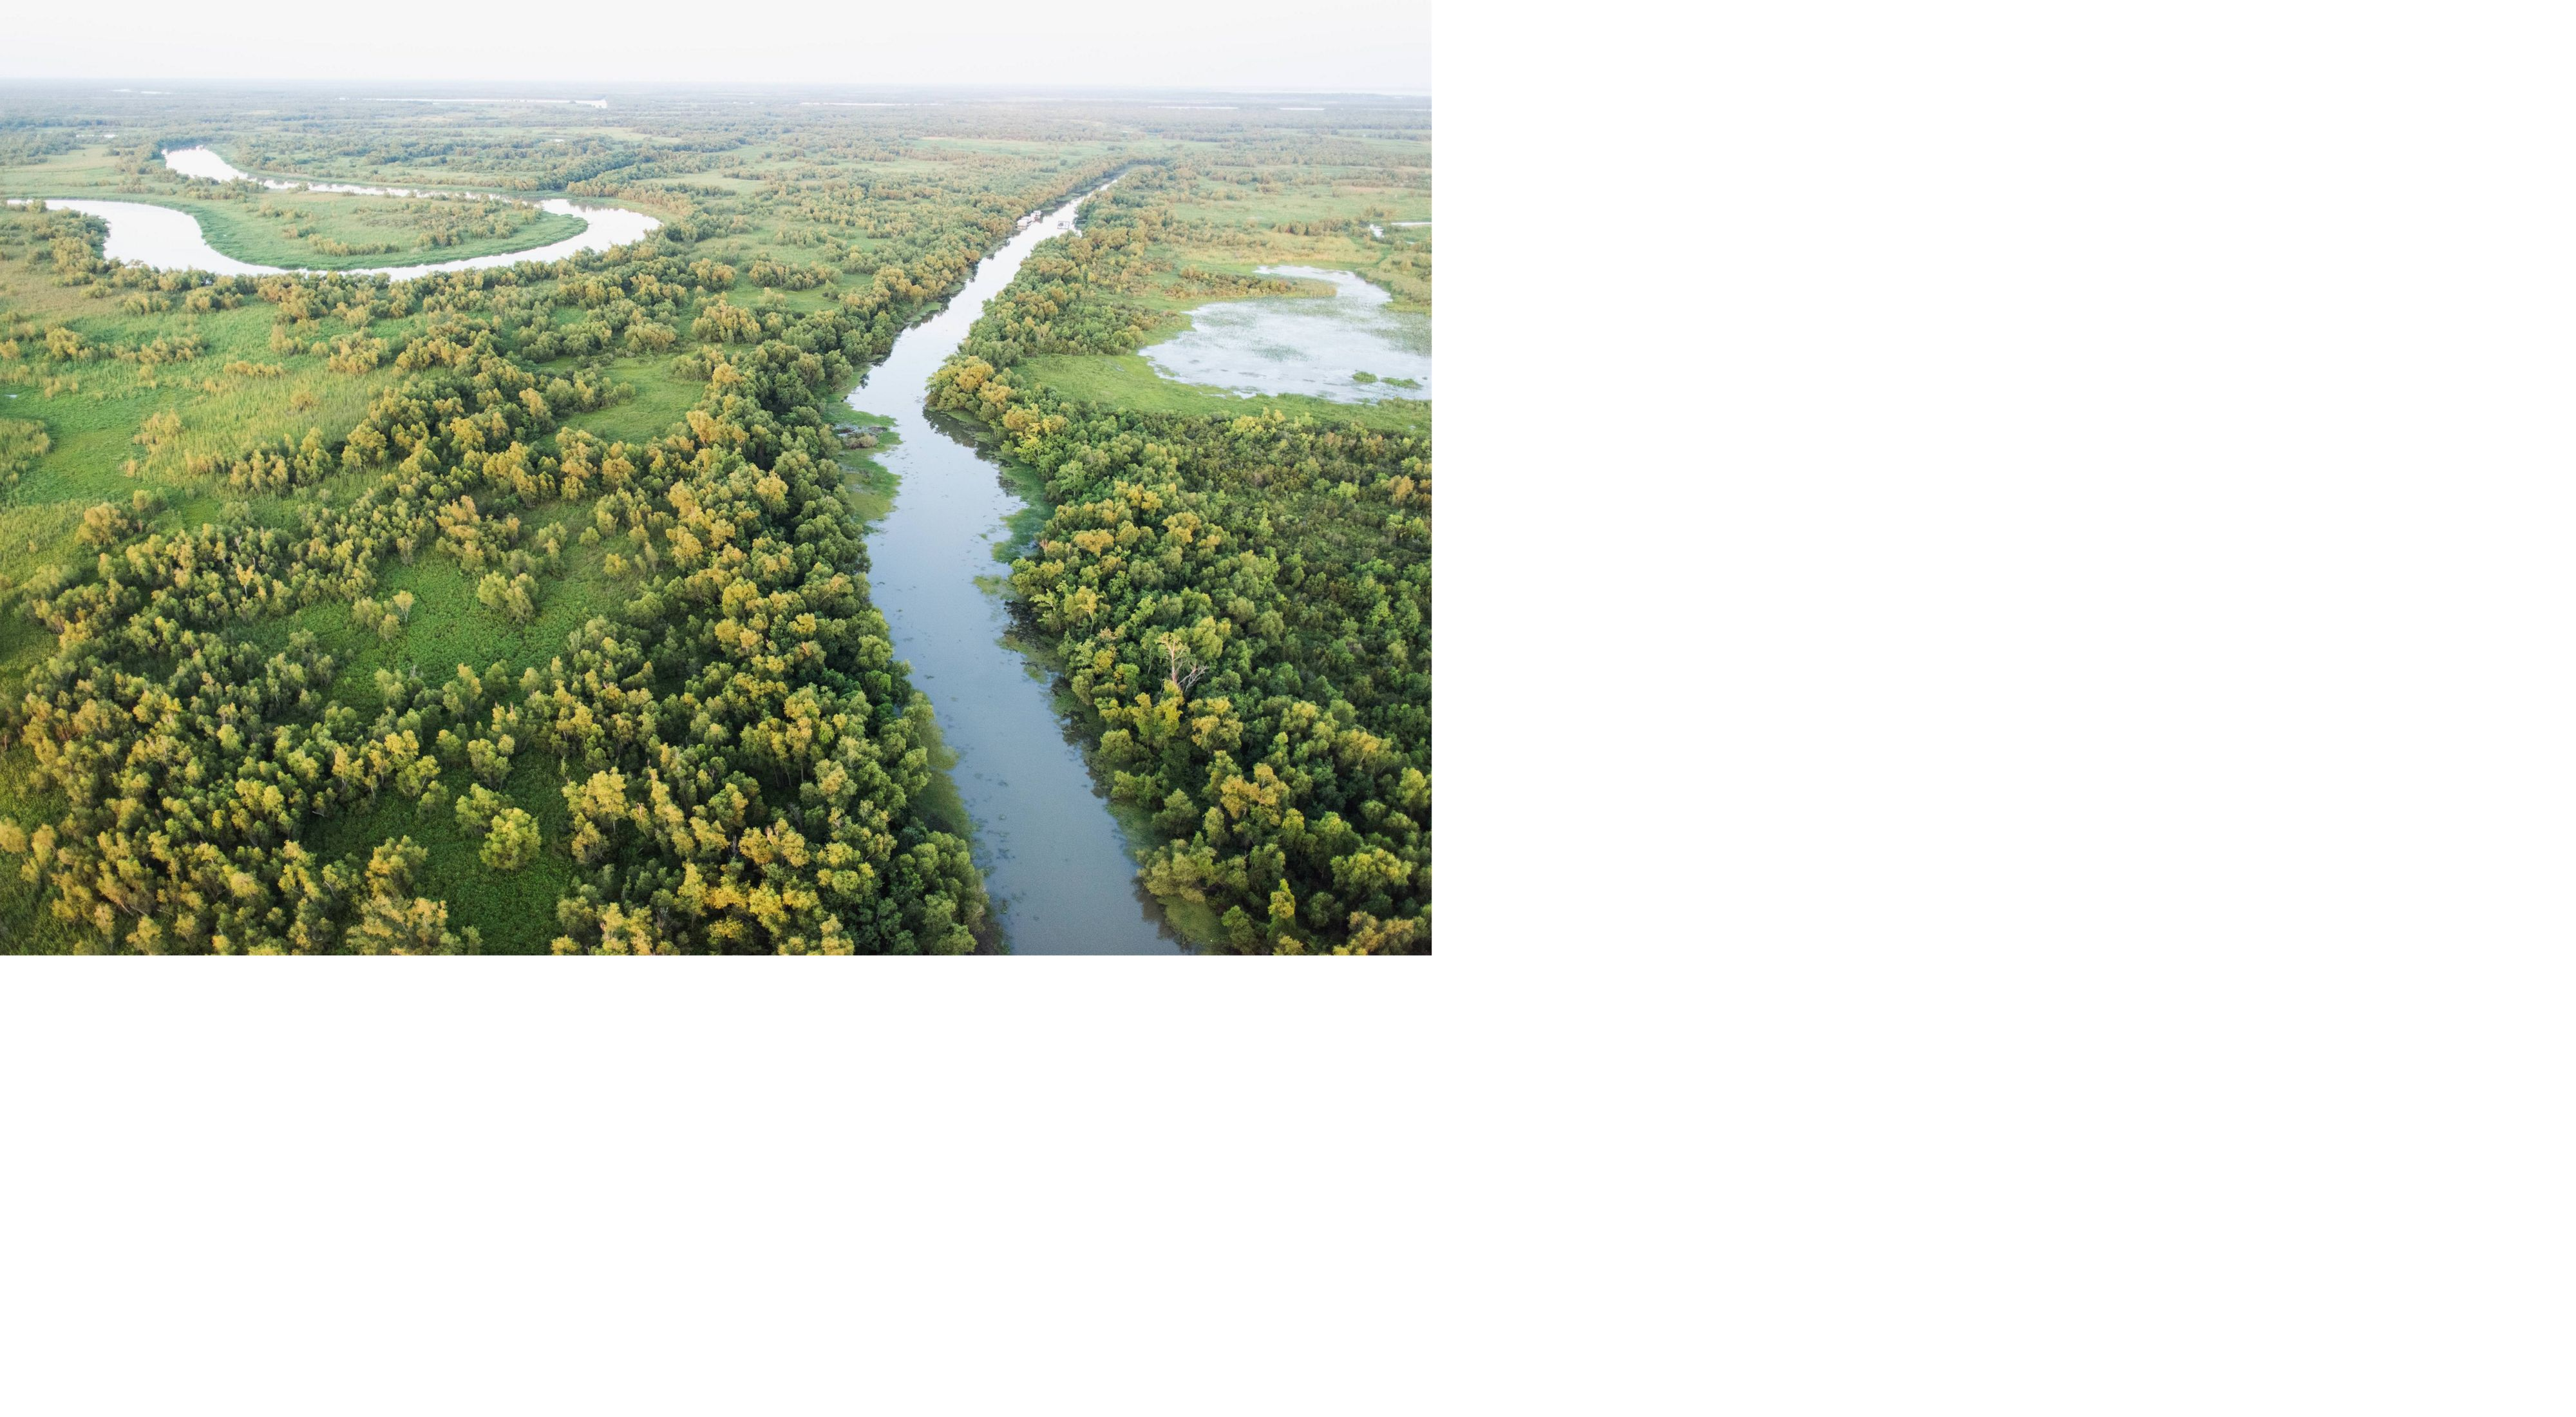 Aerial photo of a marsh and river system near the Wax Lake Delta, Louisiana.